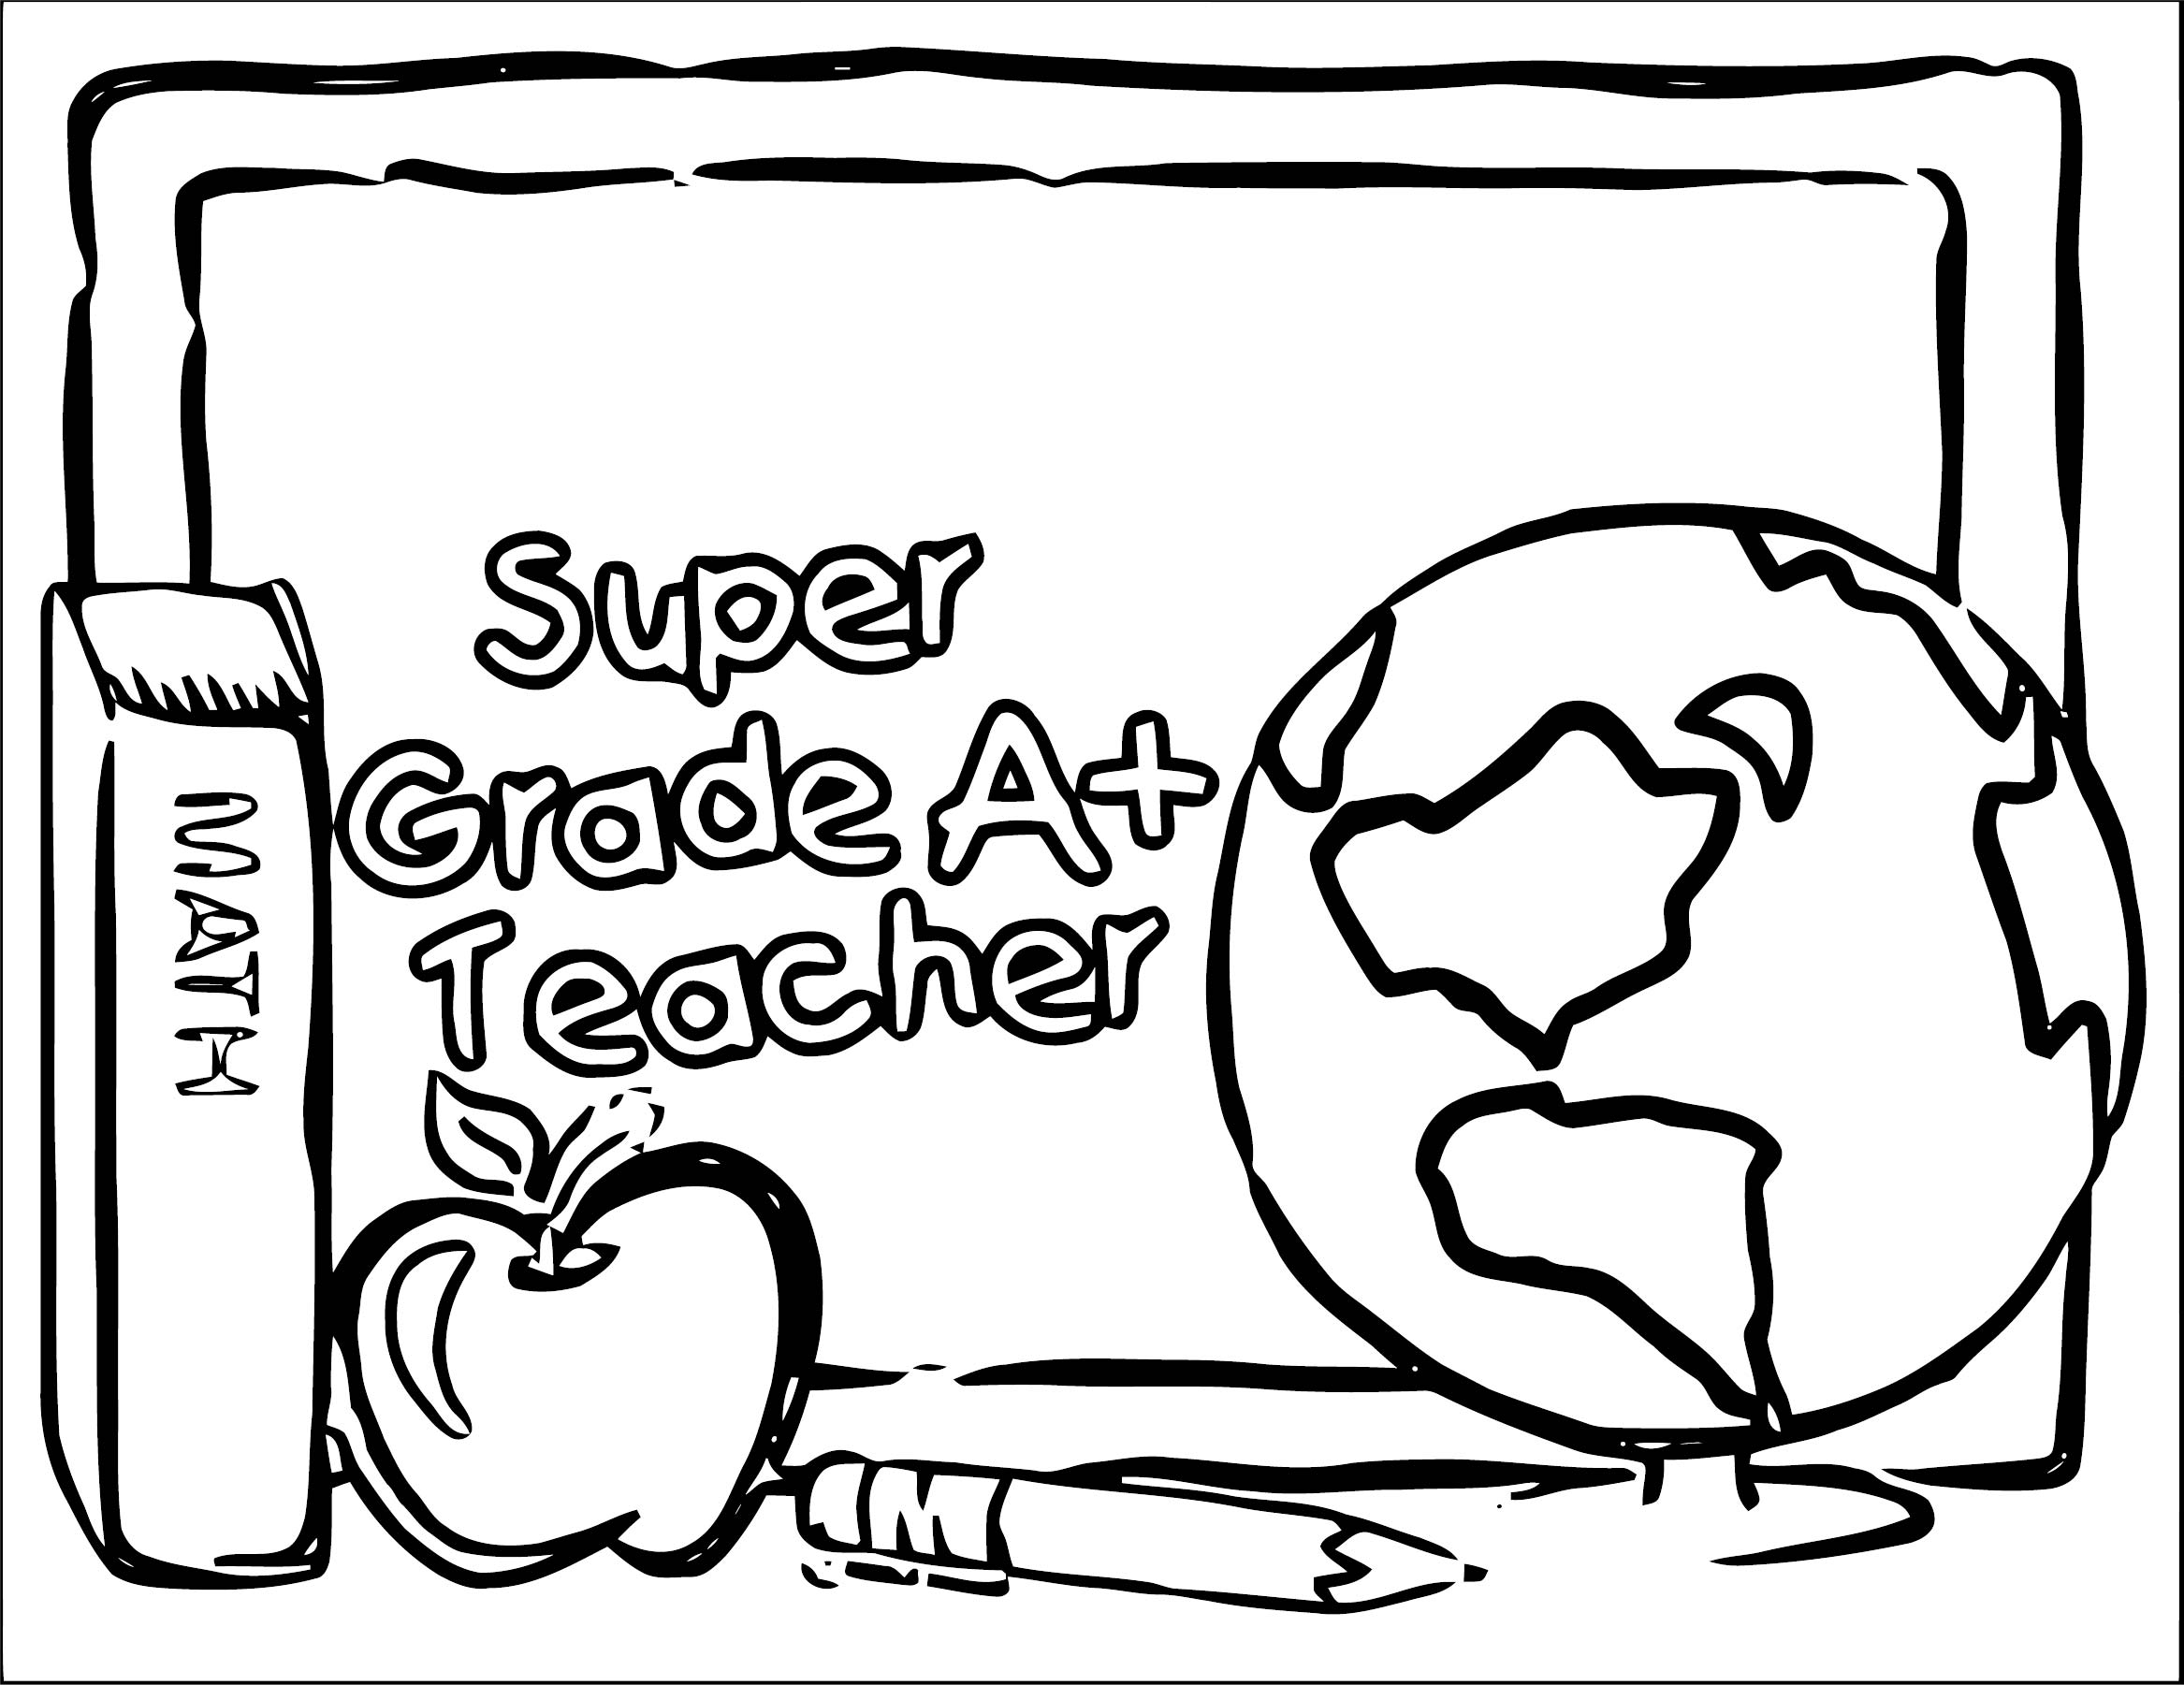 English Teacher We Coloring Page 133 | Wecoloringpage.com